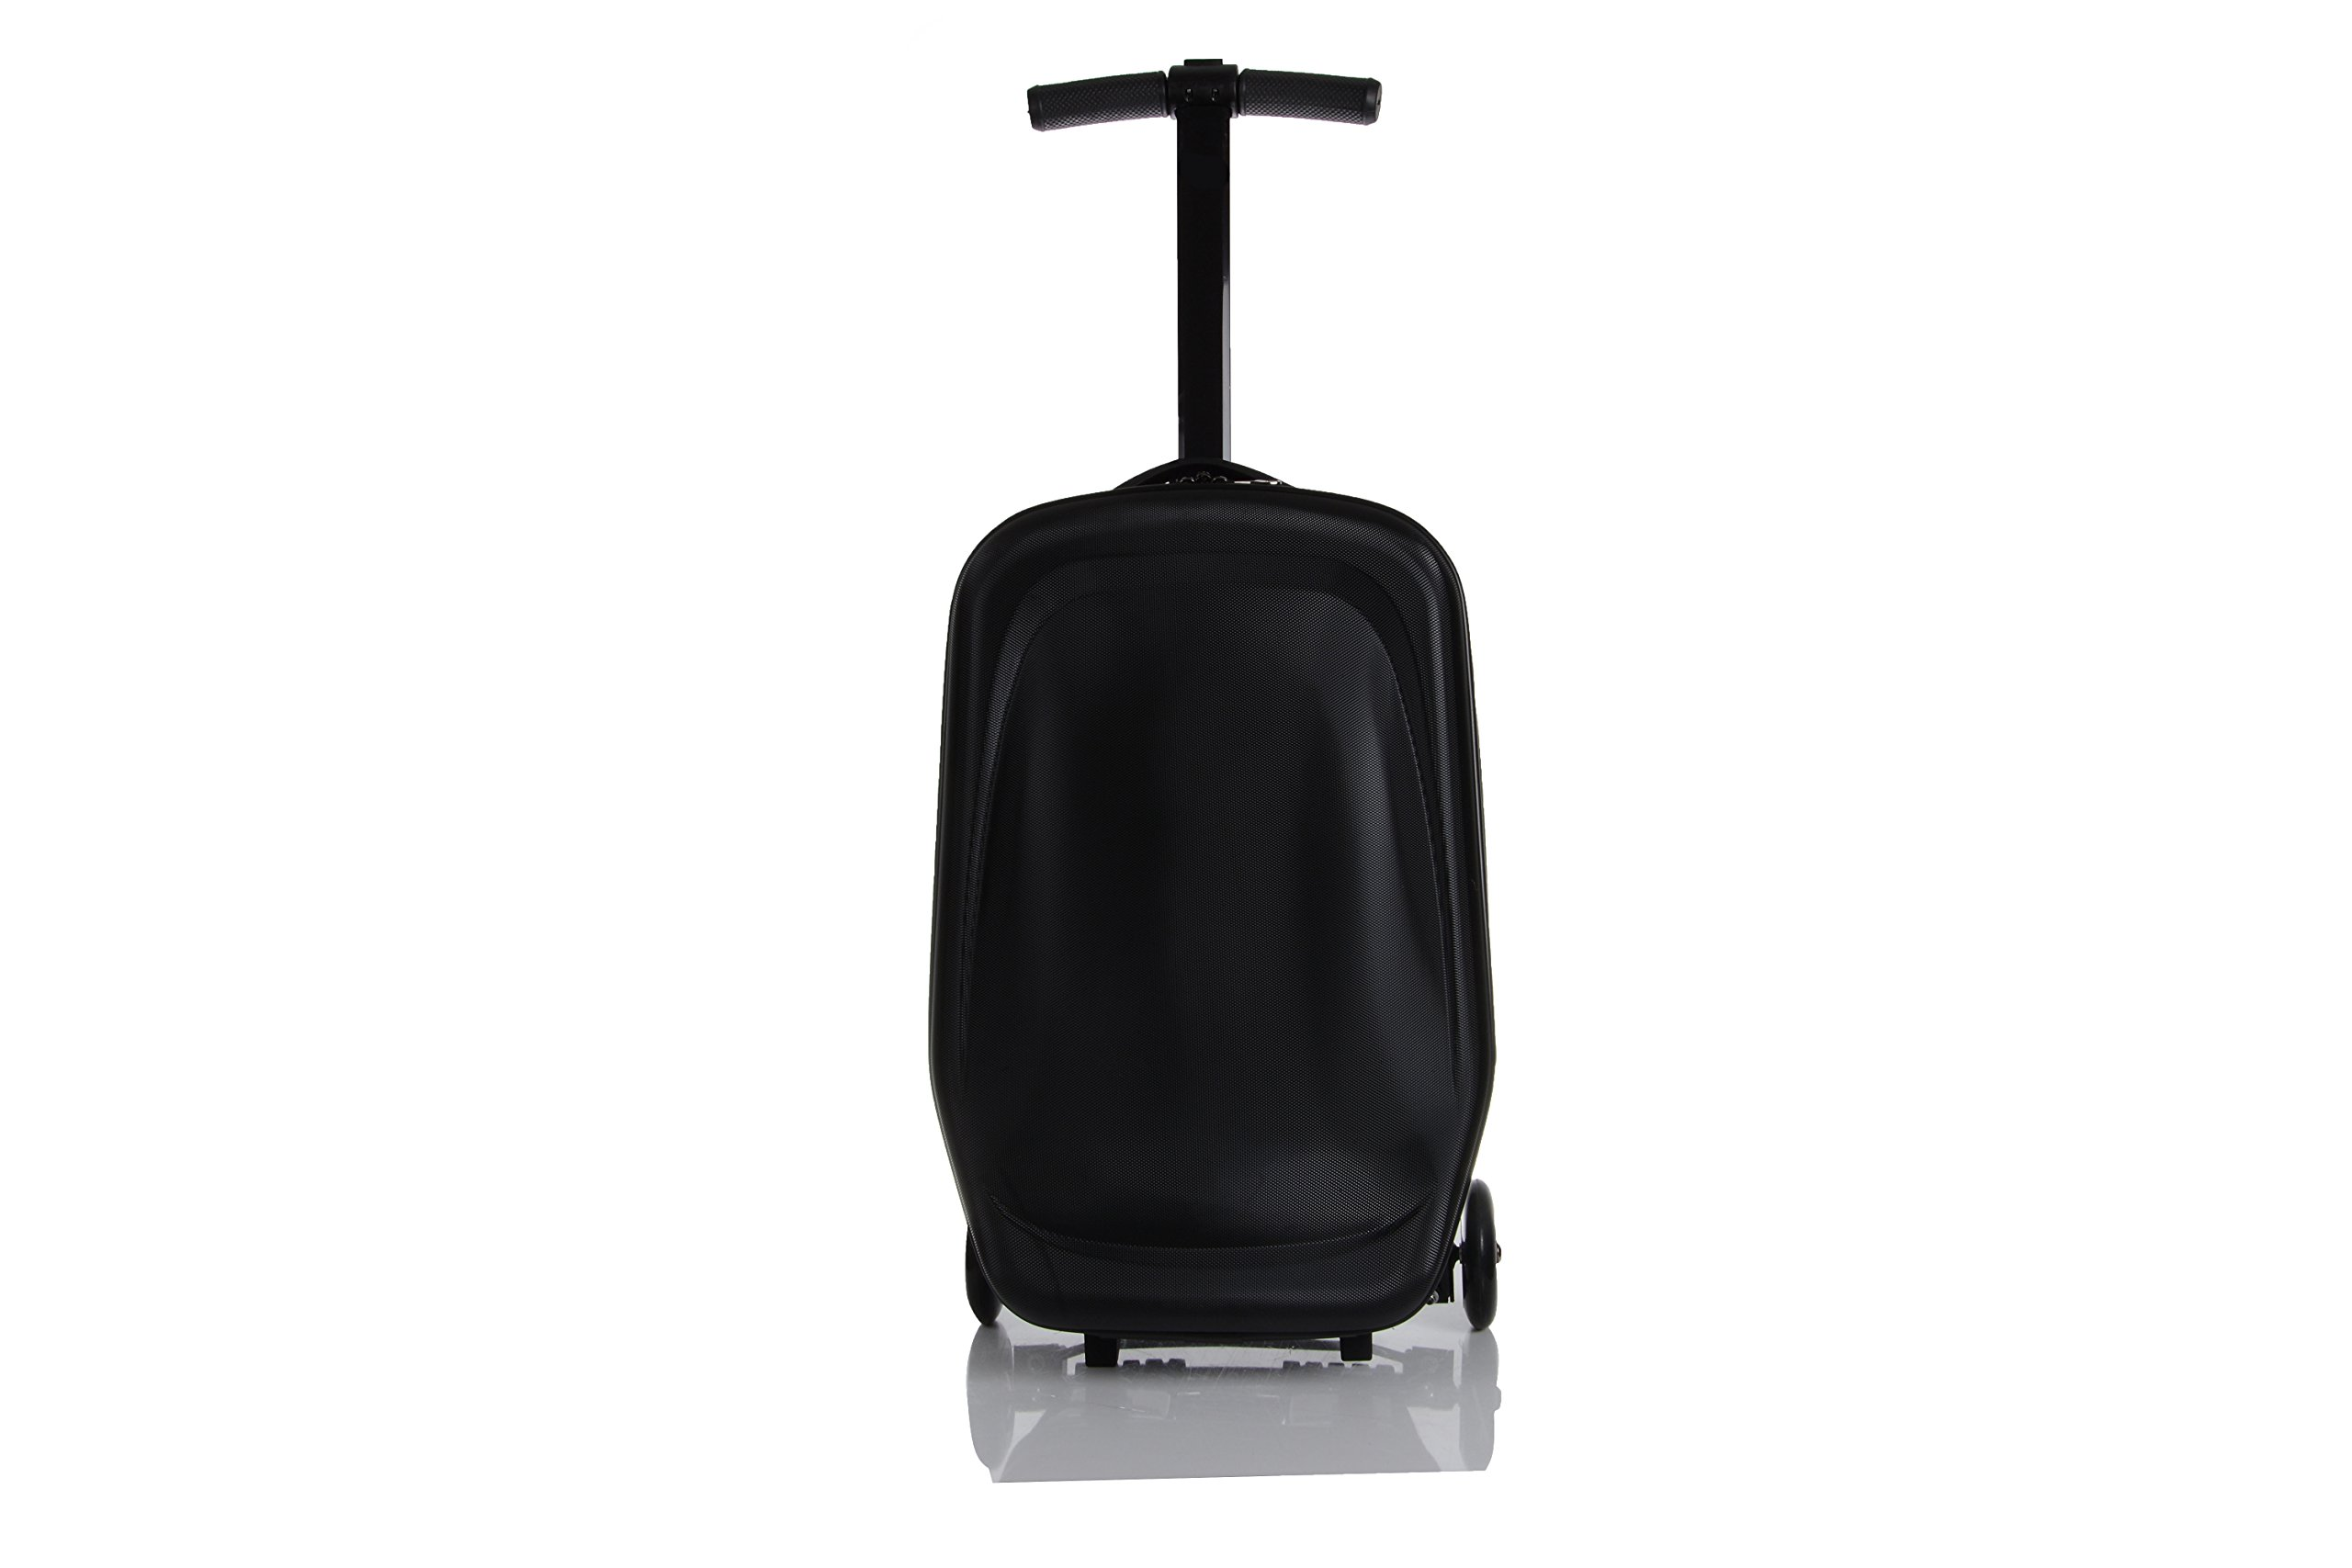 20 Inch Unisex Multi-Functional Scooter Travel Upright Suitcase Luggage with 3 Hot Wheels for Girls Boys and students Foldable Trolley Convertible Travel School Bag (Black)